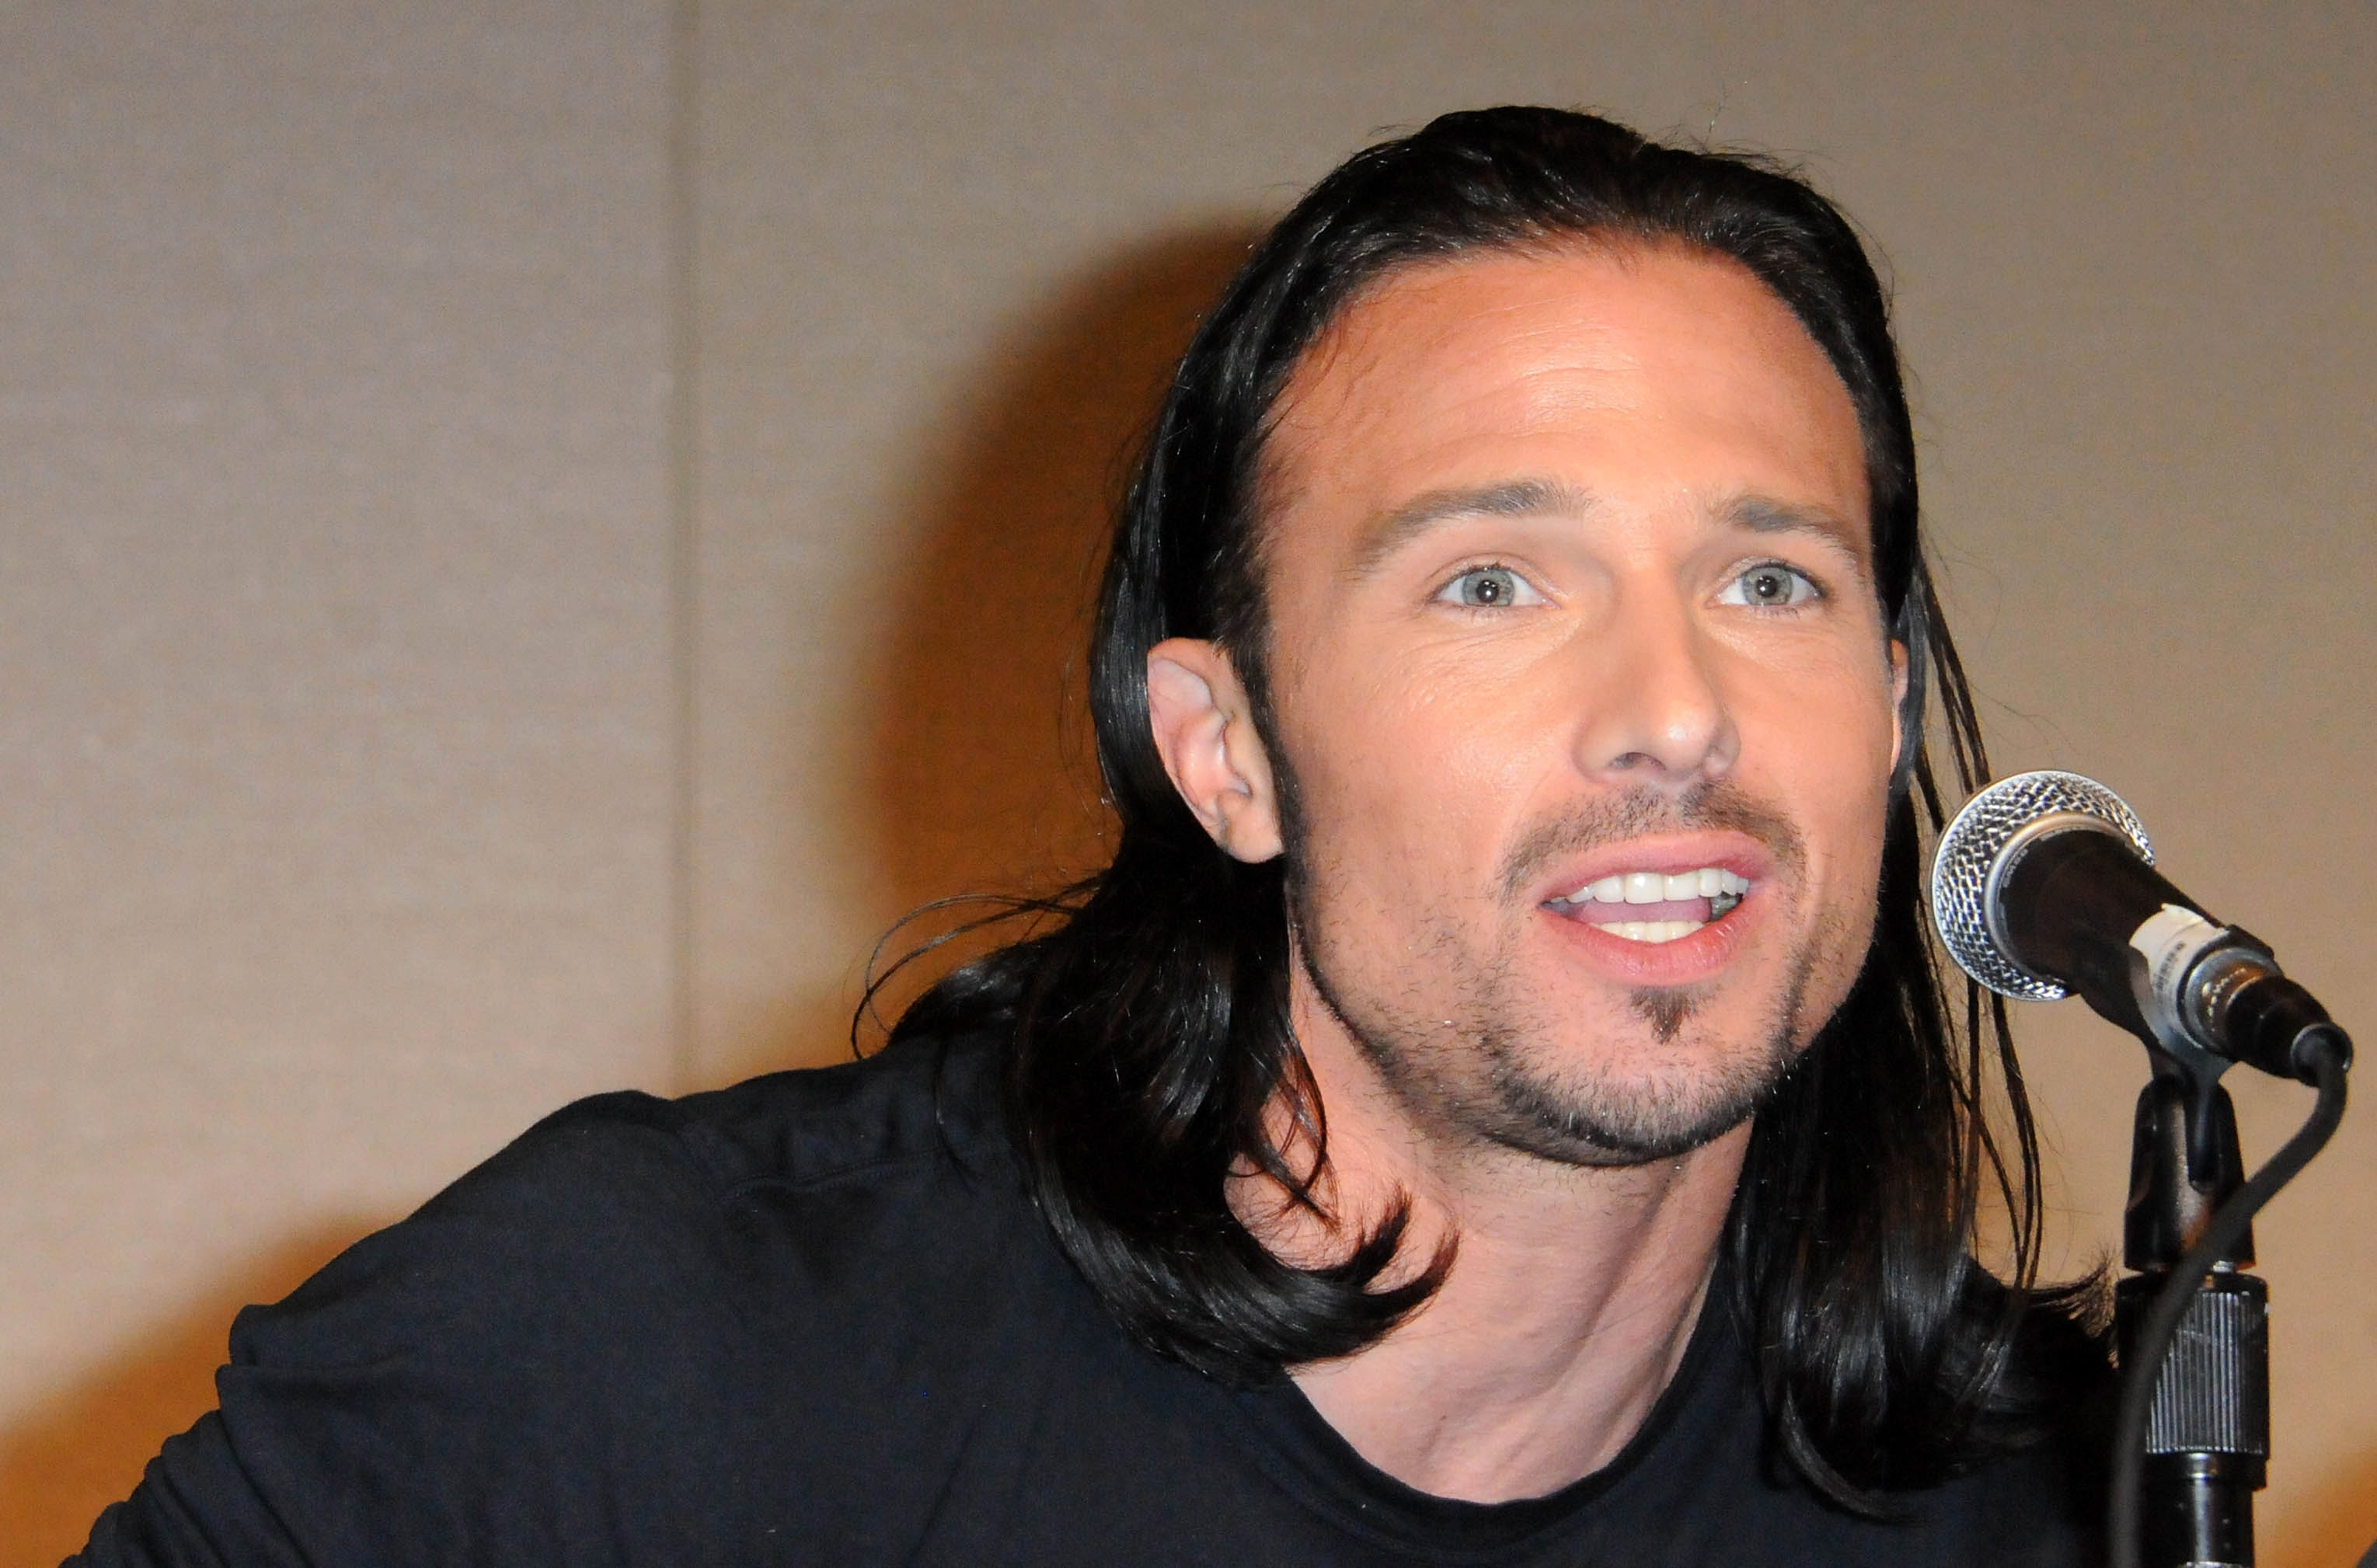 Actor Ricardo Medina Jr.  participates in the 2012 Power Morphicon 3 held at the Pasadena Convention Center on August 19, 2012 in Pasadena, California.